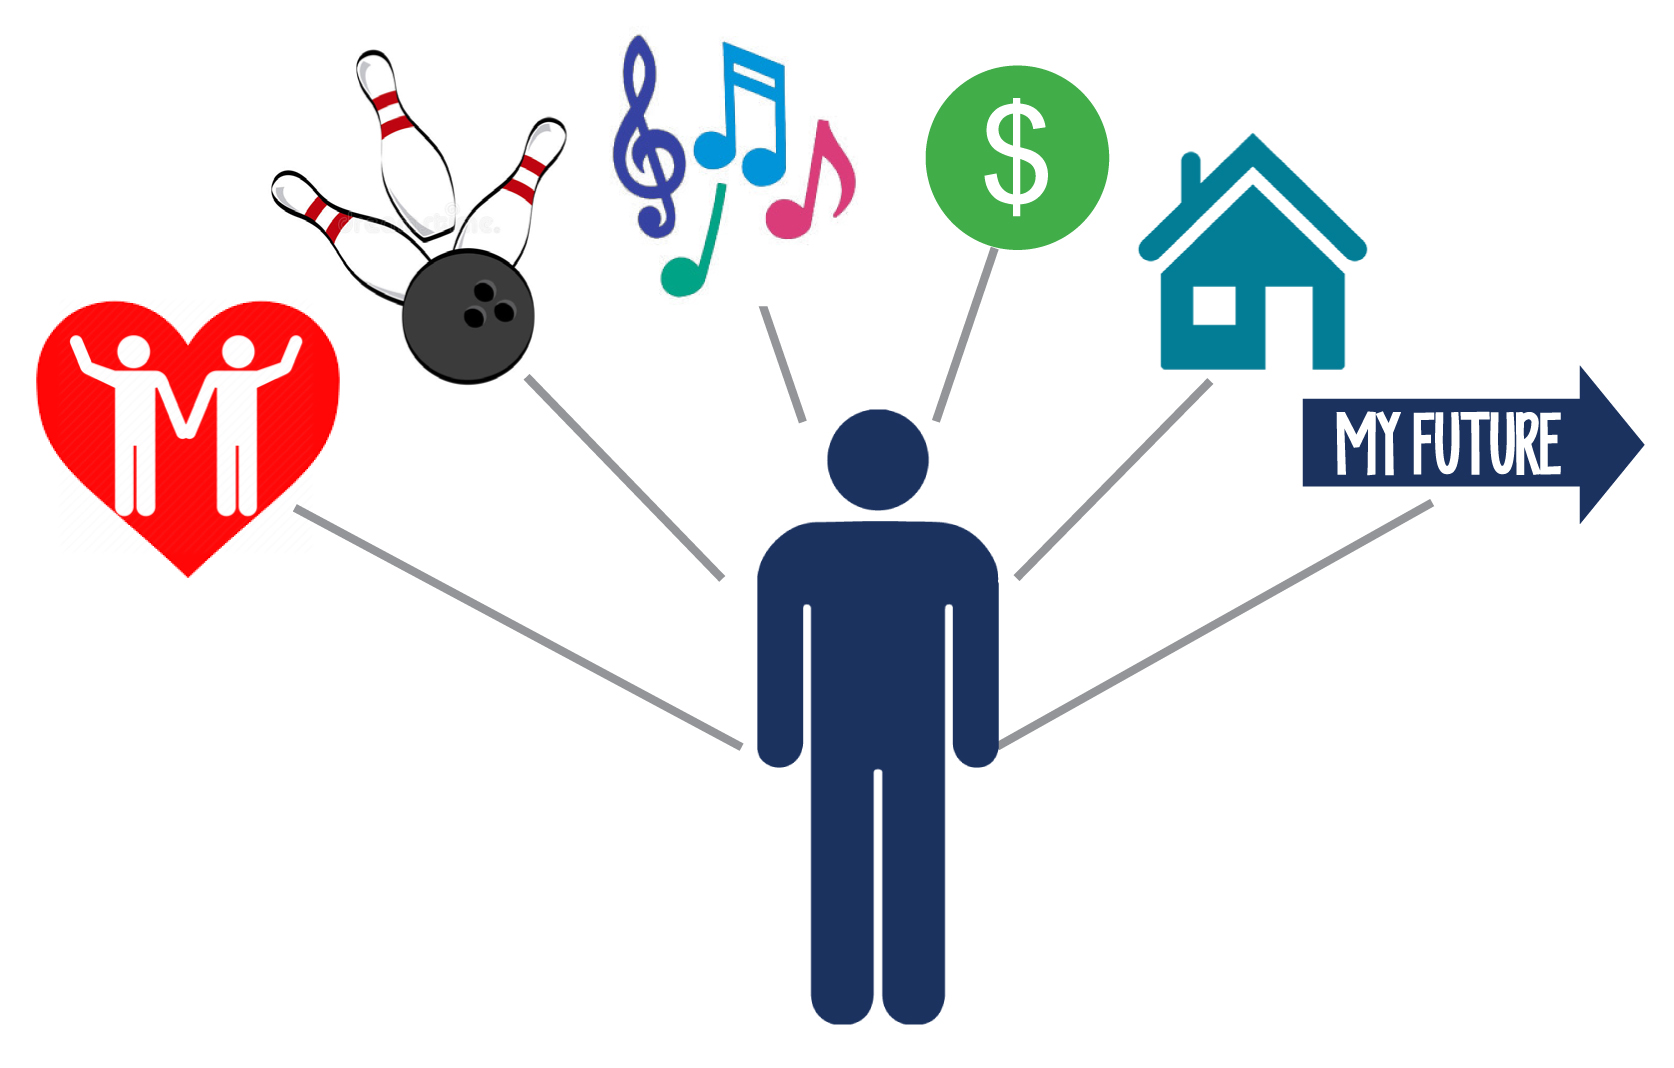 Graphic showing outline of person and clip art showing love recreation music money house and future